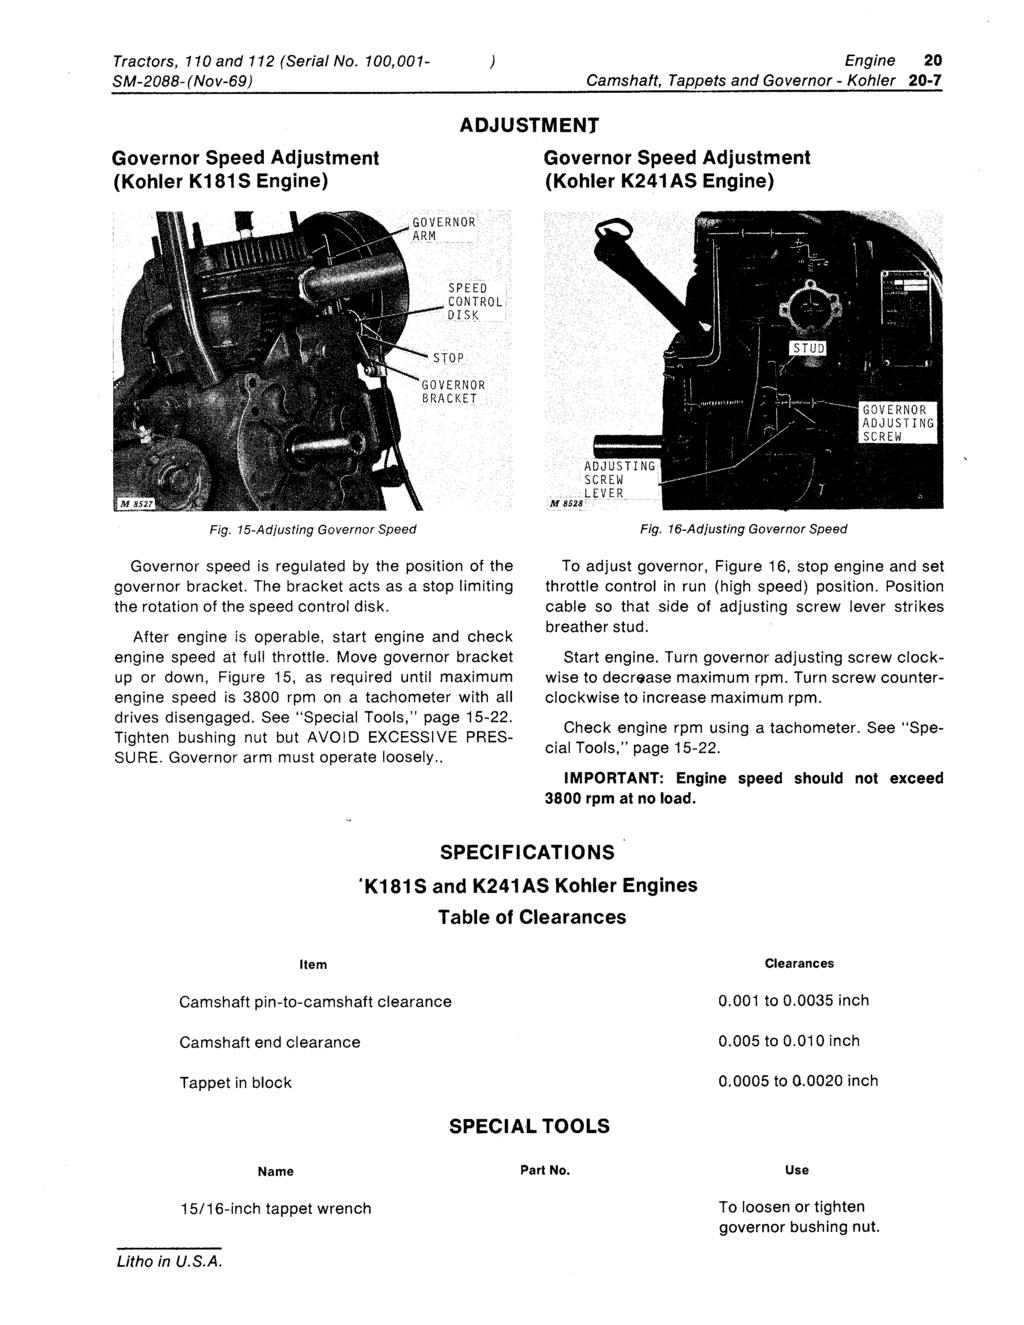 110 and 112 Lawn and Garden Tractors  Serial No  (100, ,000) SERVICE